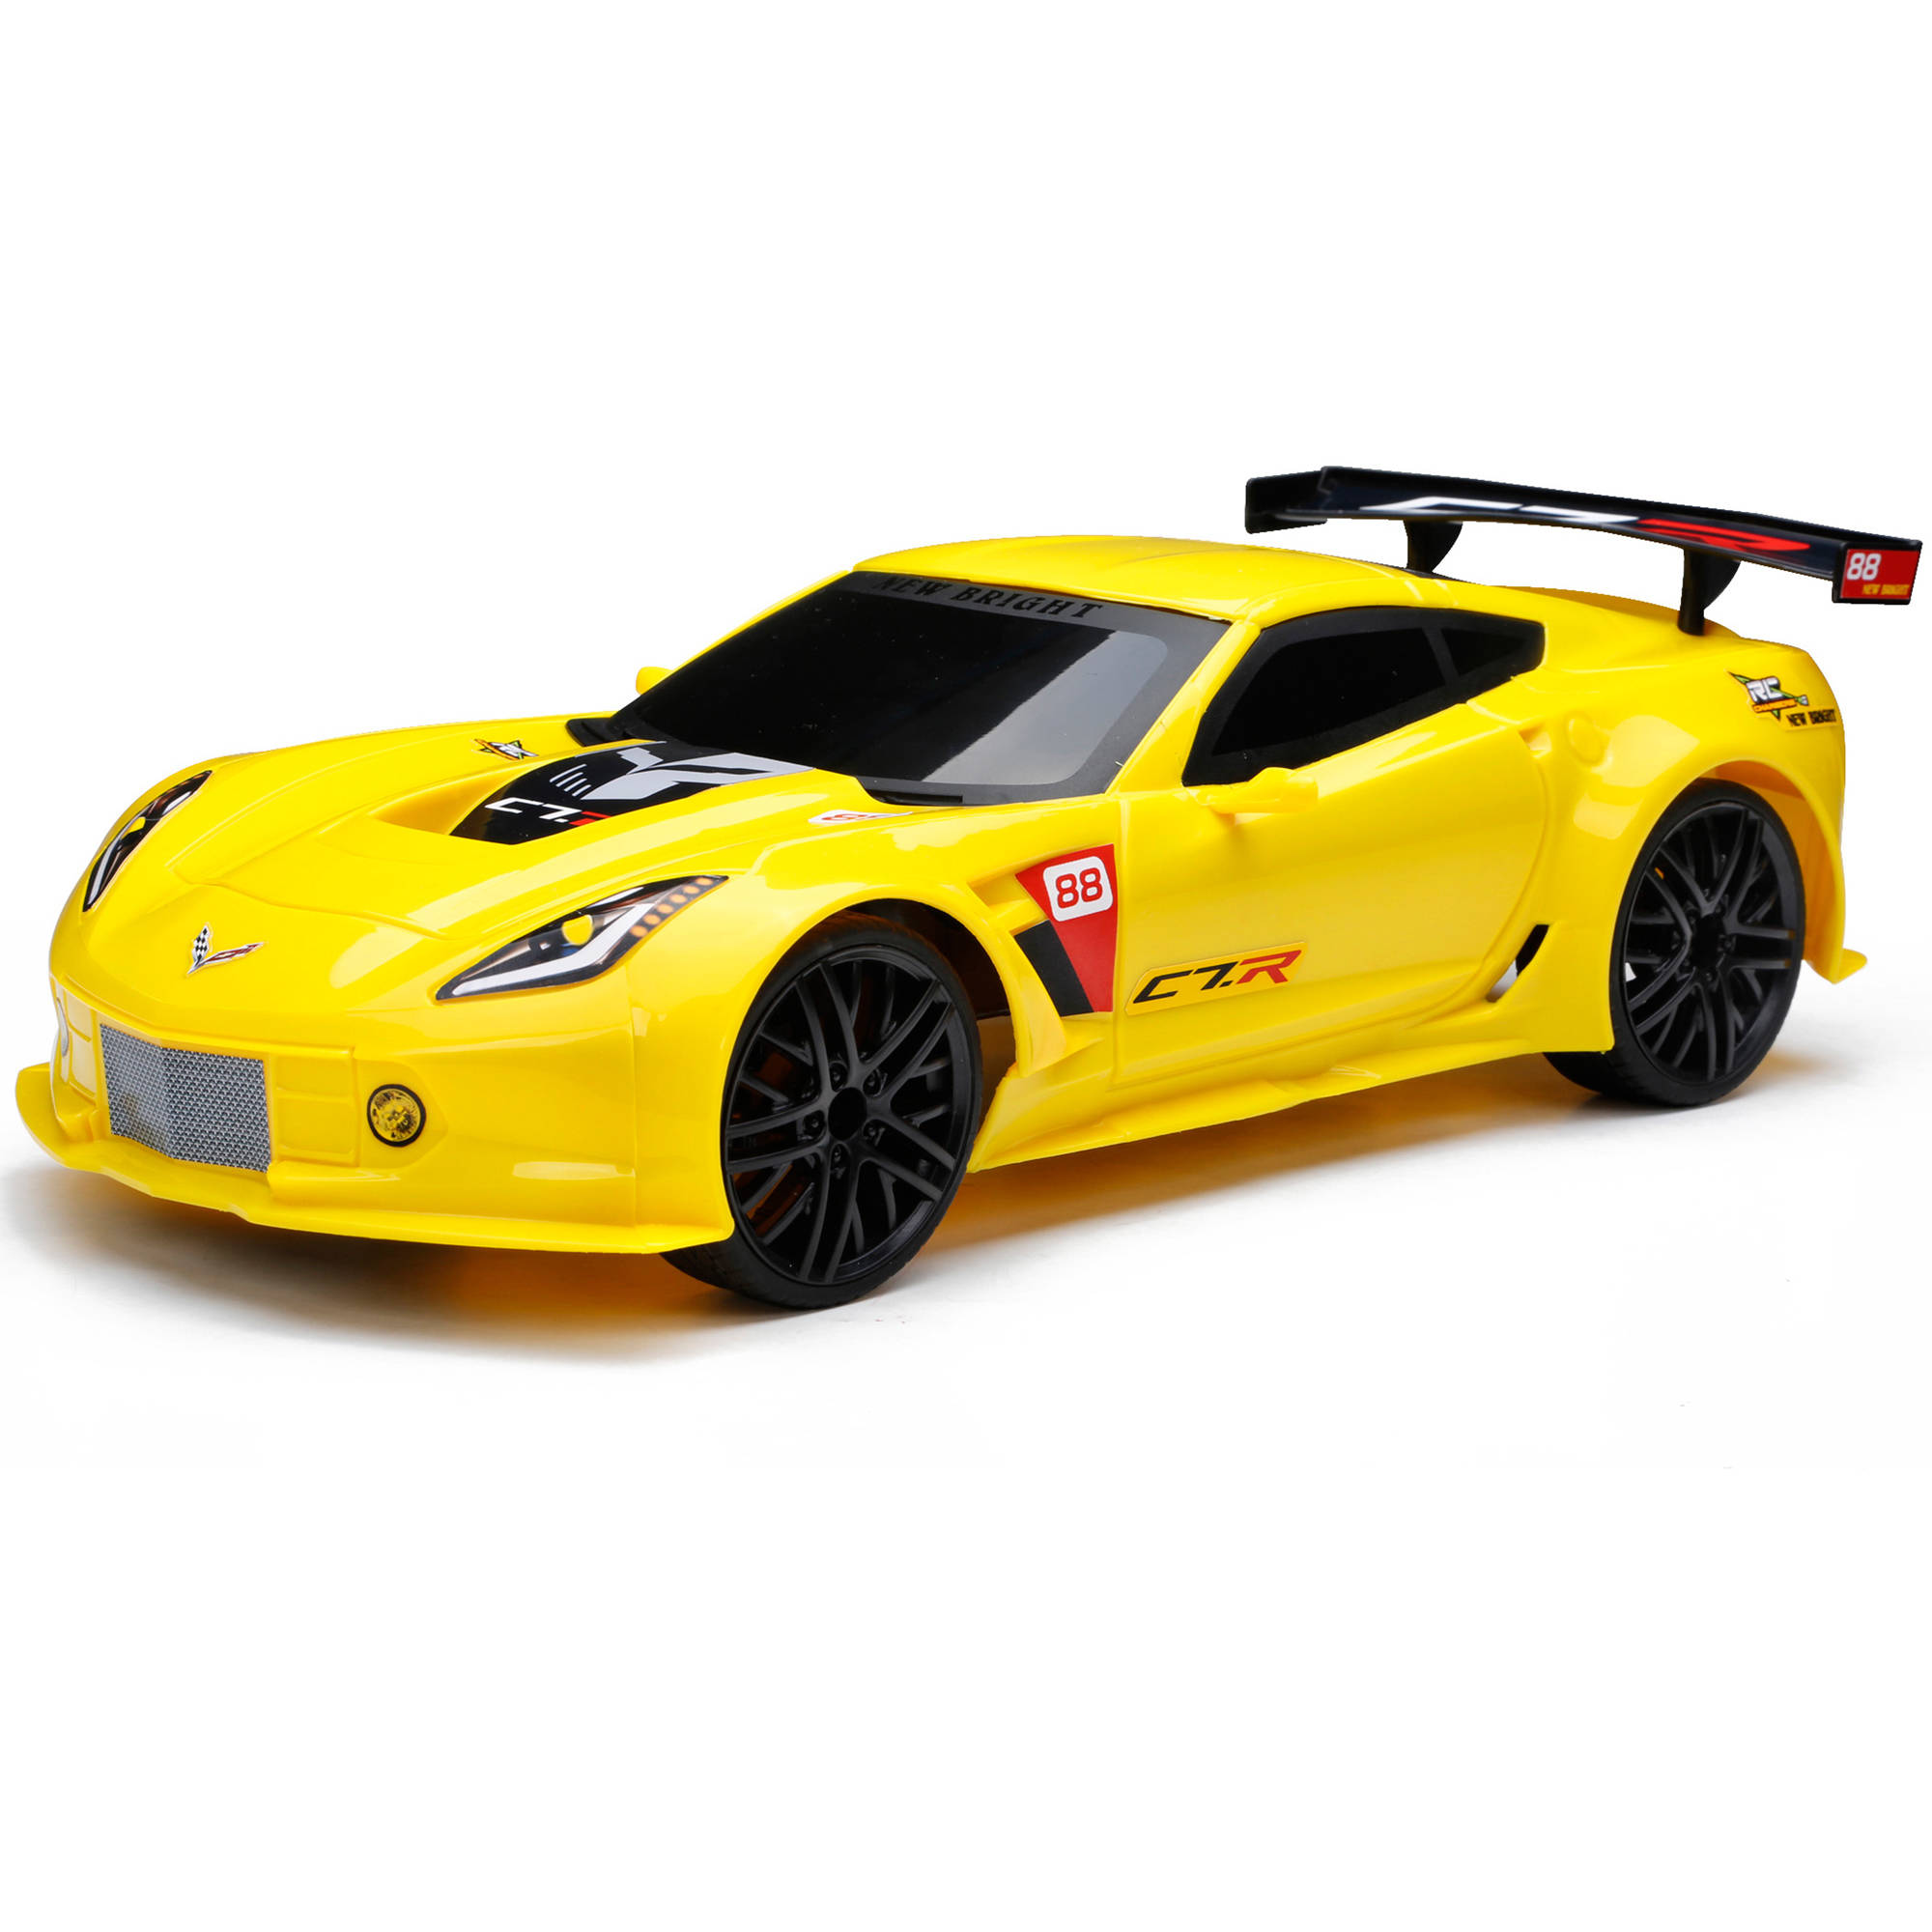 New Bright® RC Chargers® Corvette® C7.R™ Full Function Radio Control Car 6 pc Box